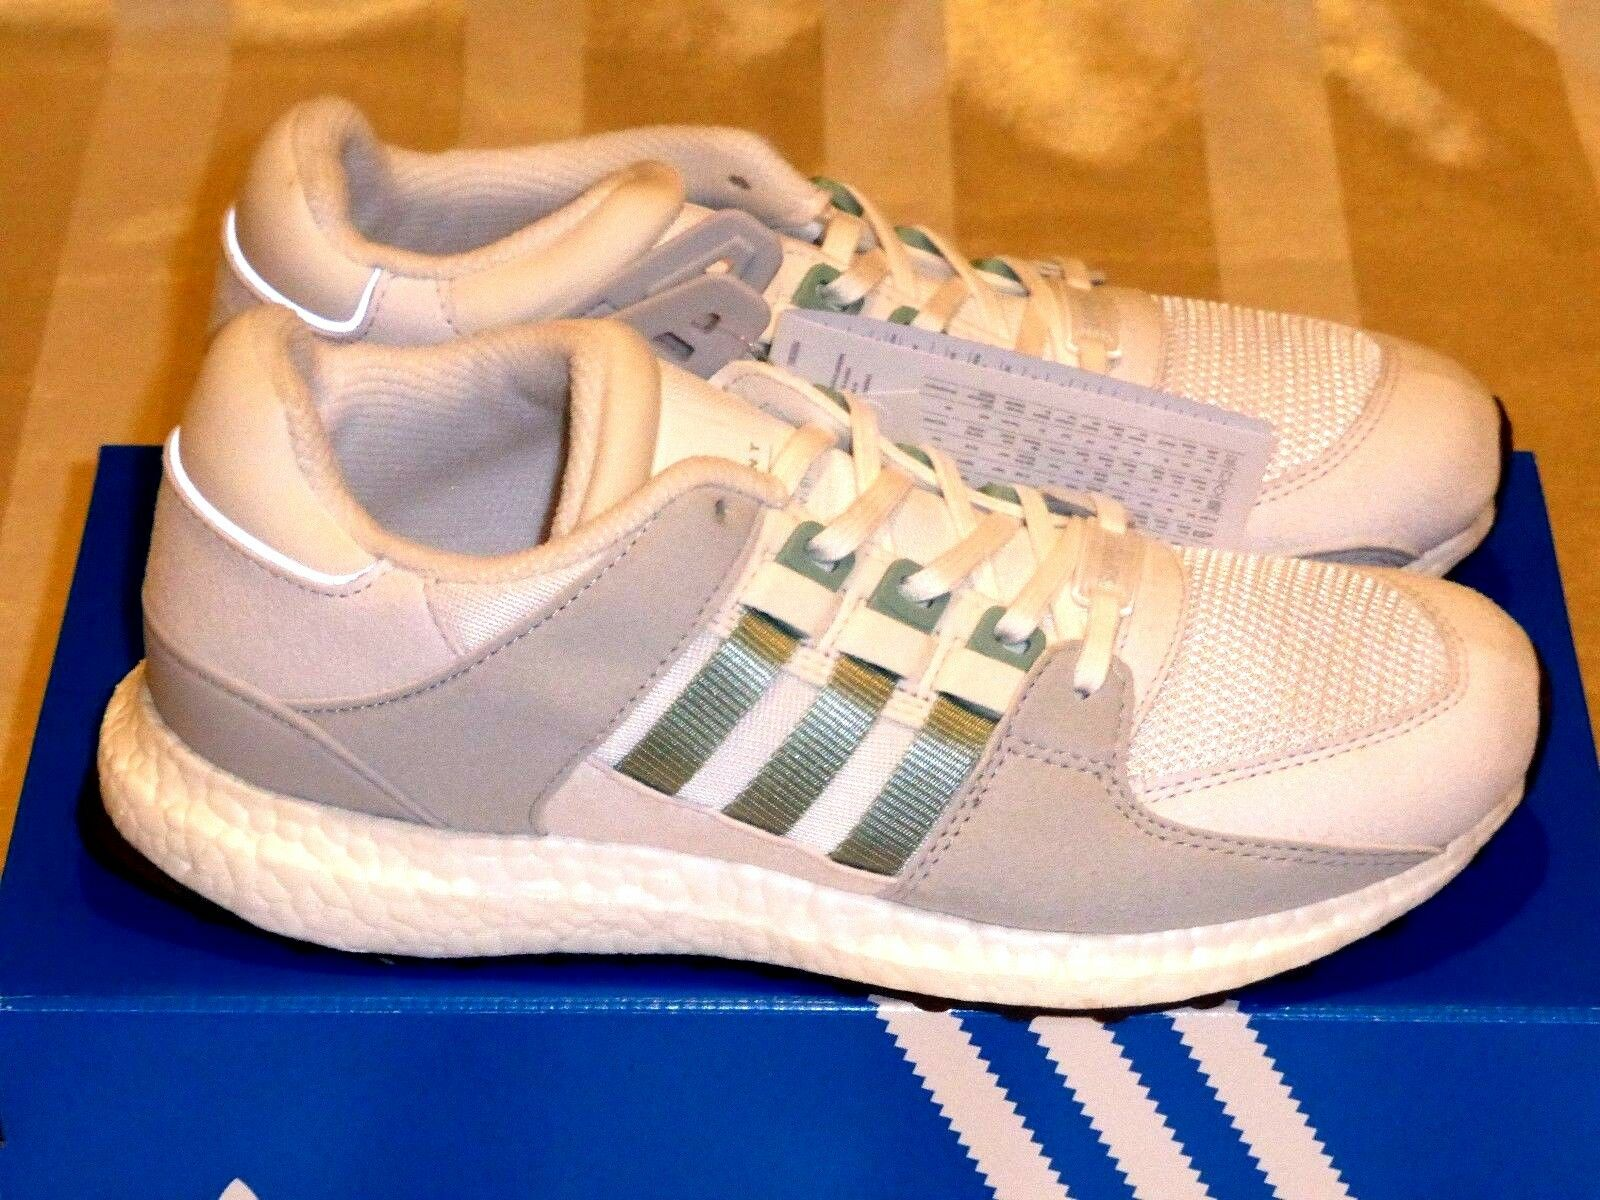 ADIDAS EQT Support Ultra Boost W 'White / Tactile Green' (Size 8.5US) New yeezy